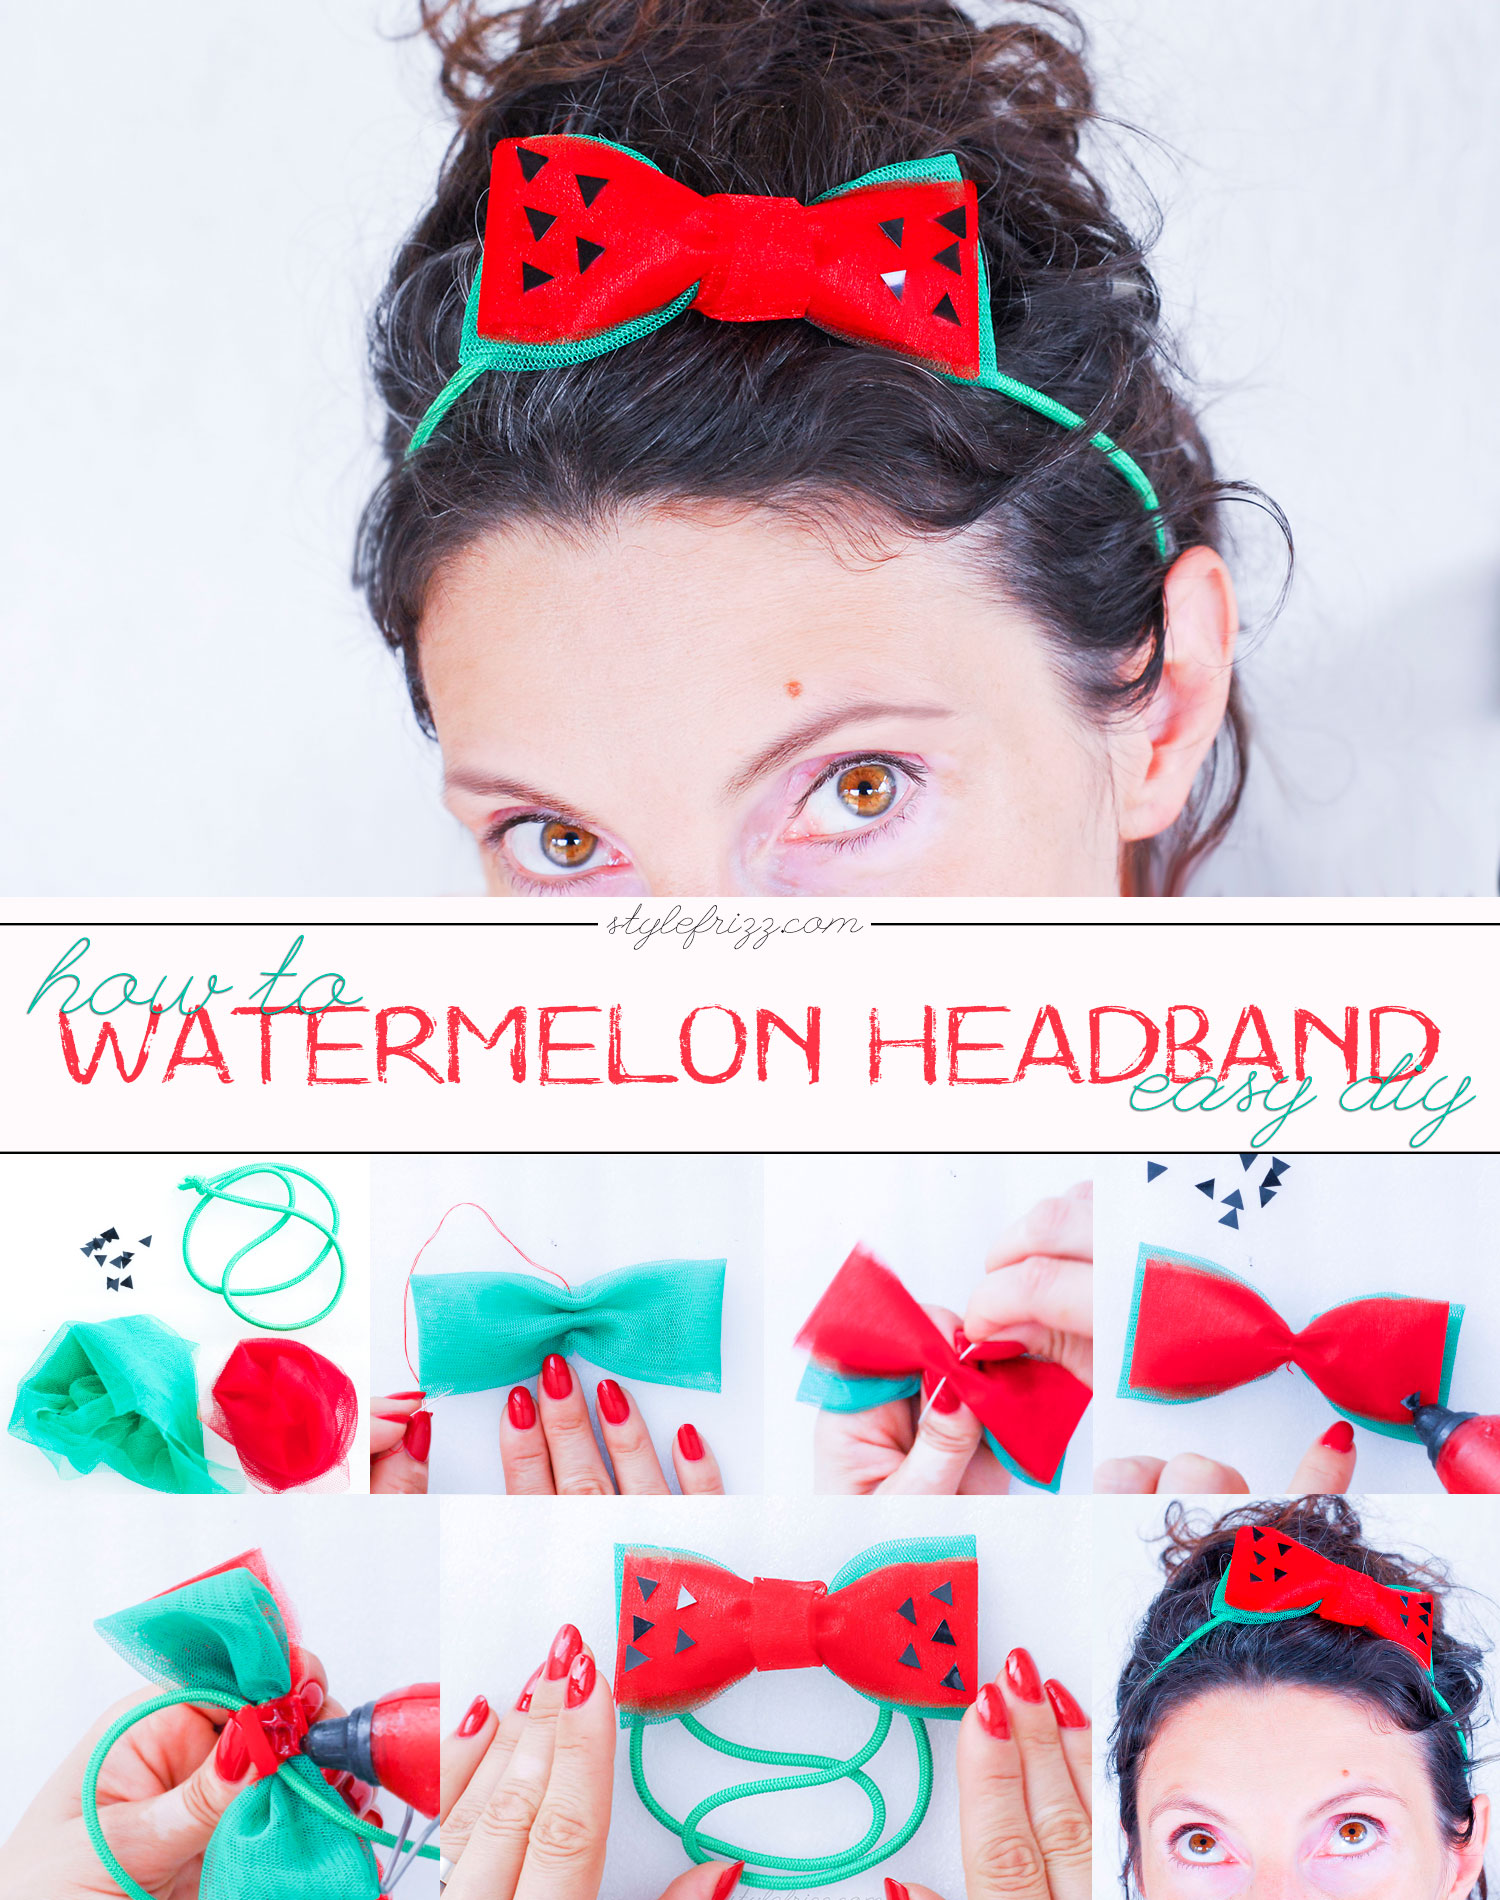 diy how to summer headband watermelon bow tutorial step by step